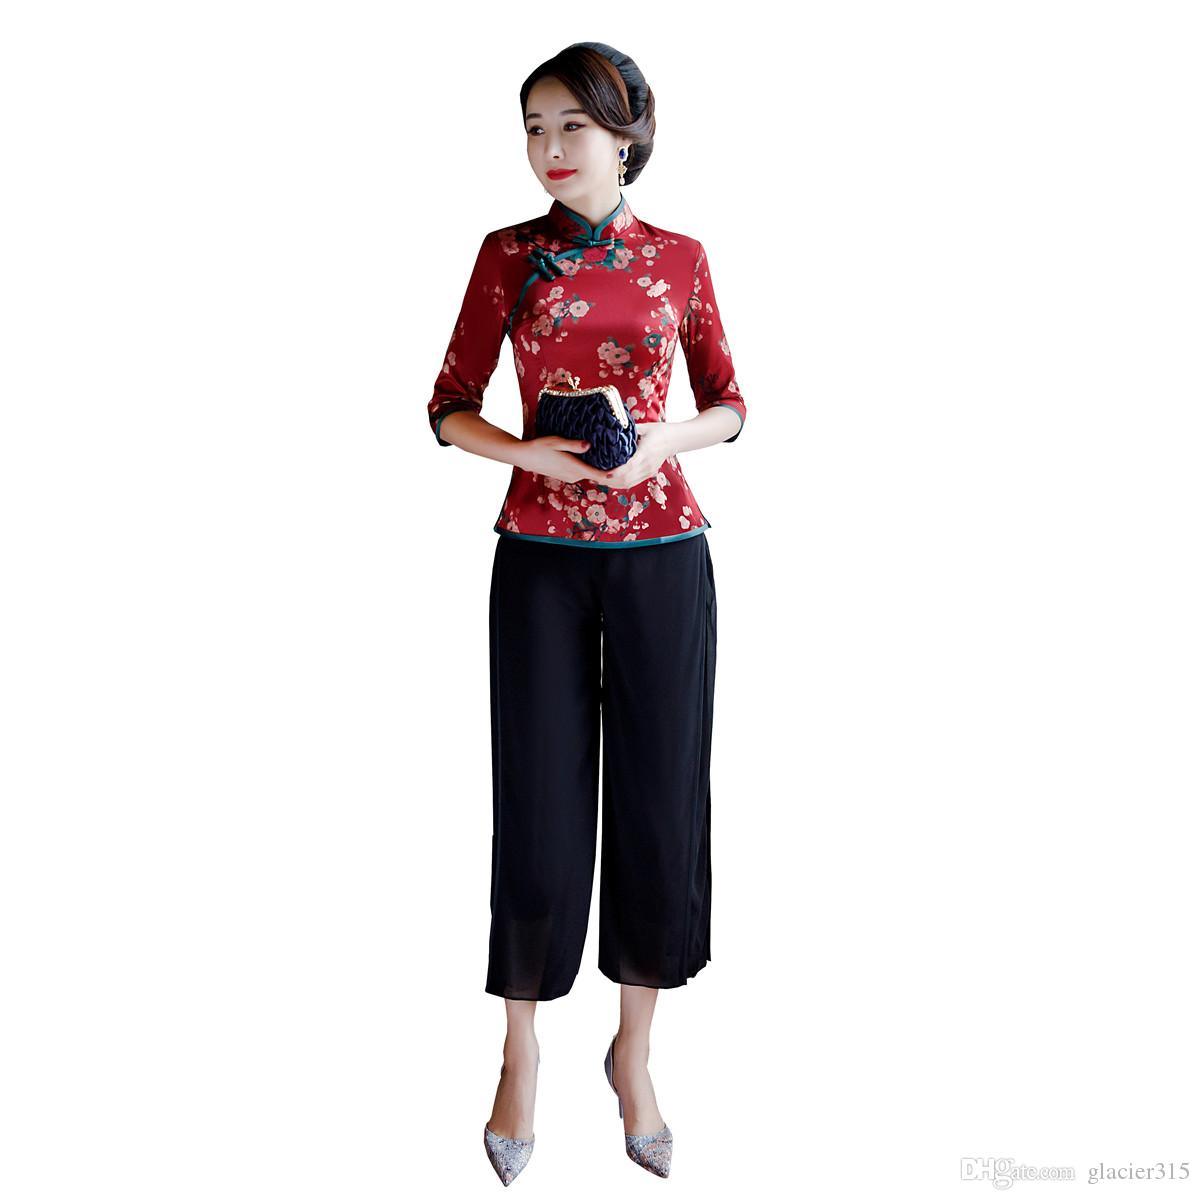 971fd6236 Shanghai Story 2019 New Arrival 3/4 Sleeve Red Cheongsam Top + Pants Set  Chinese Traditional Clothing For Women Qipao Set